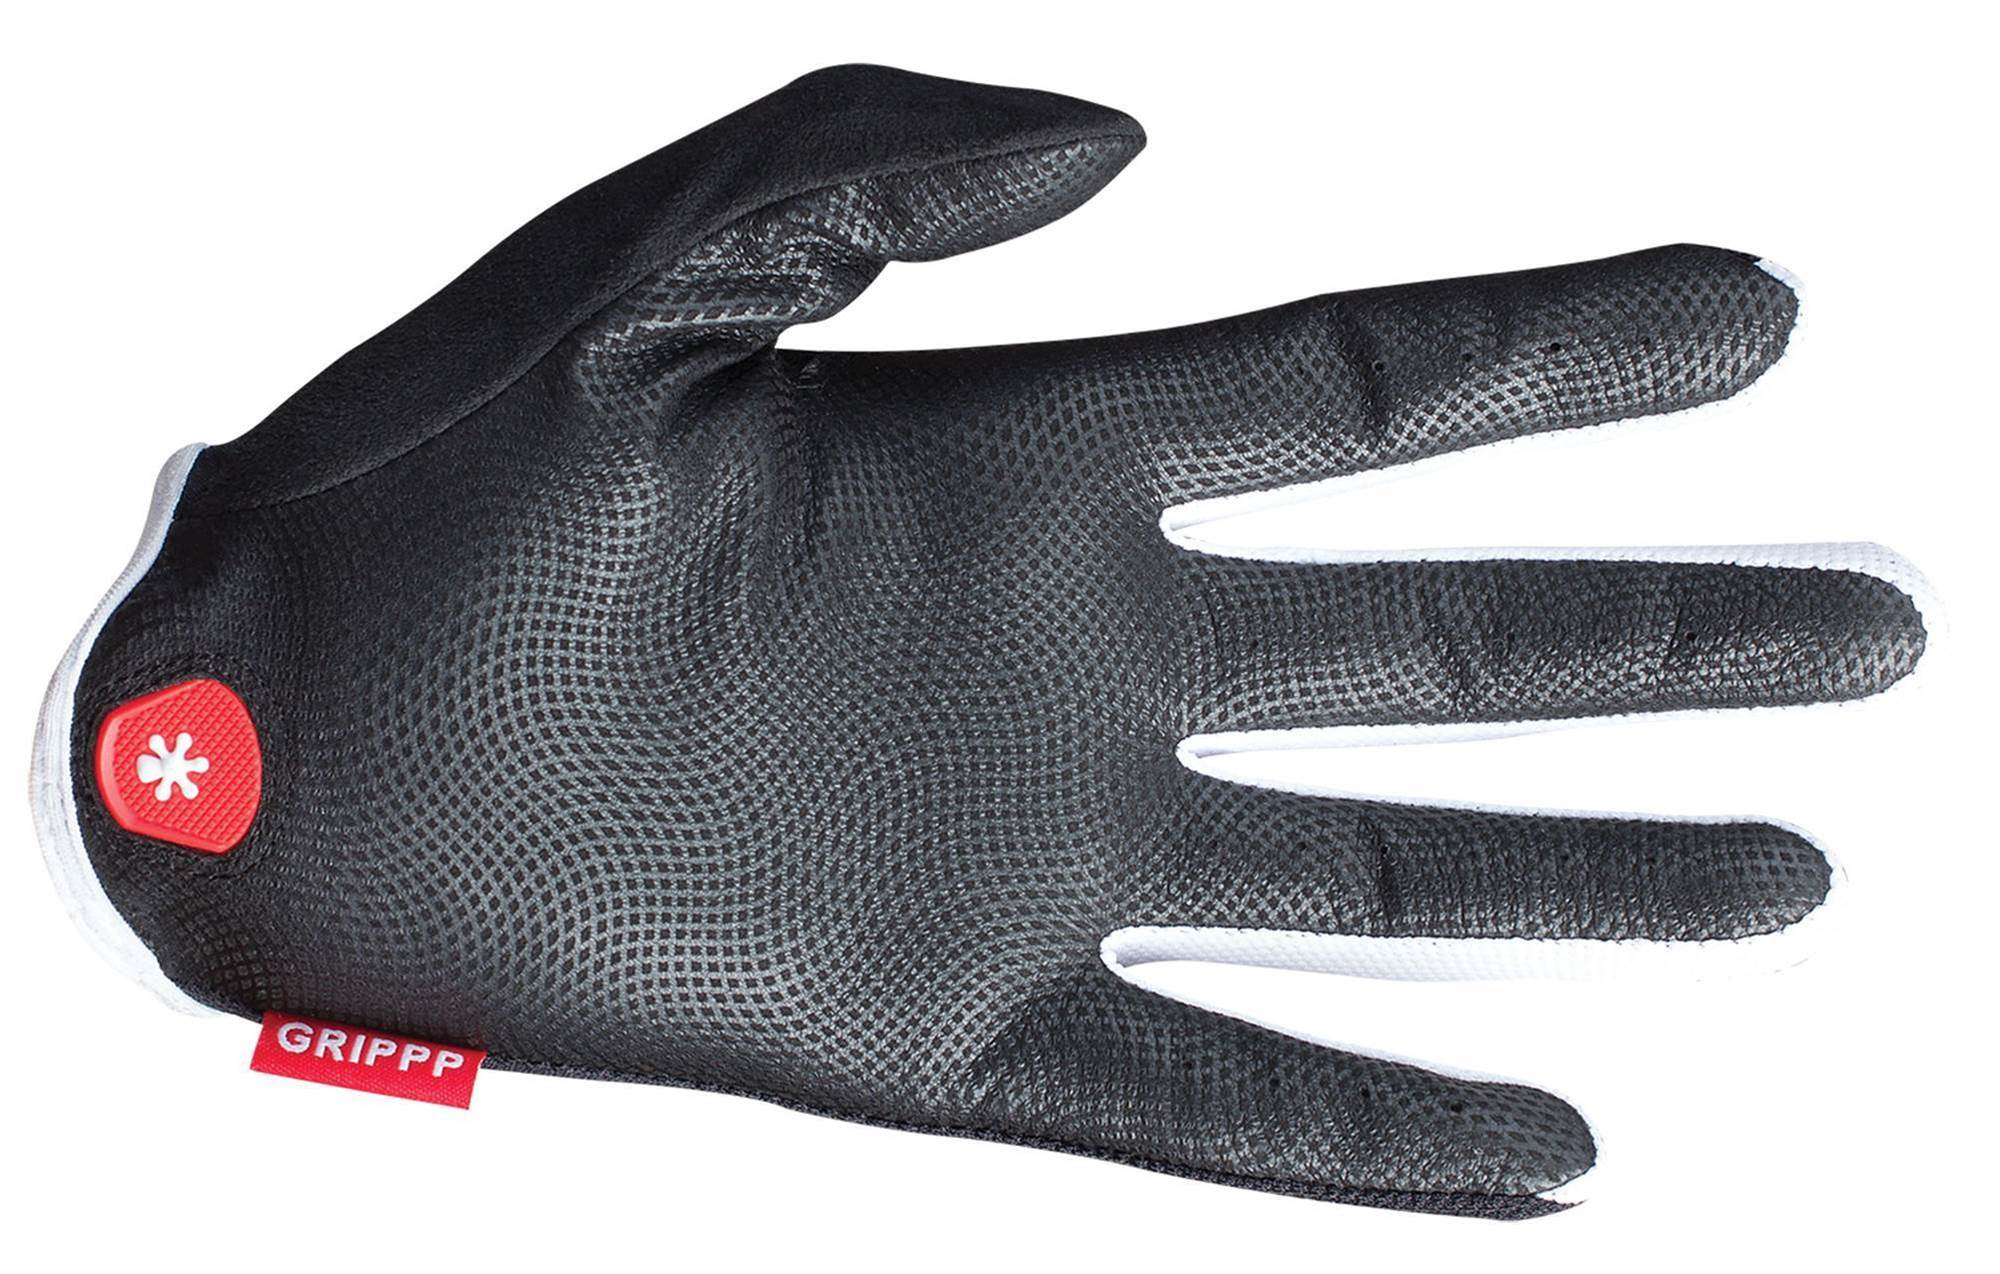 REVIEW: Hirzl Gripp Light FF gloves